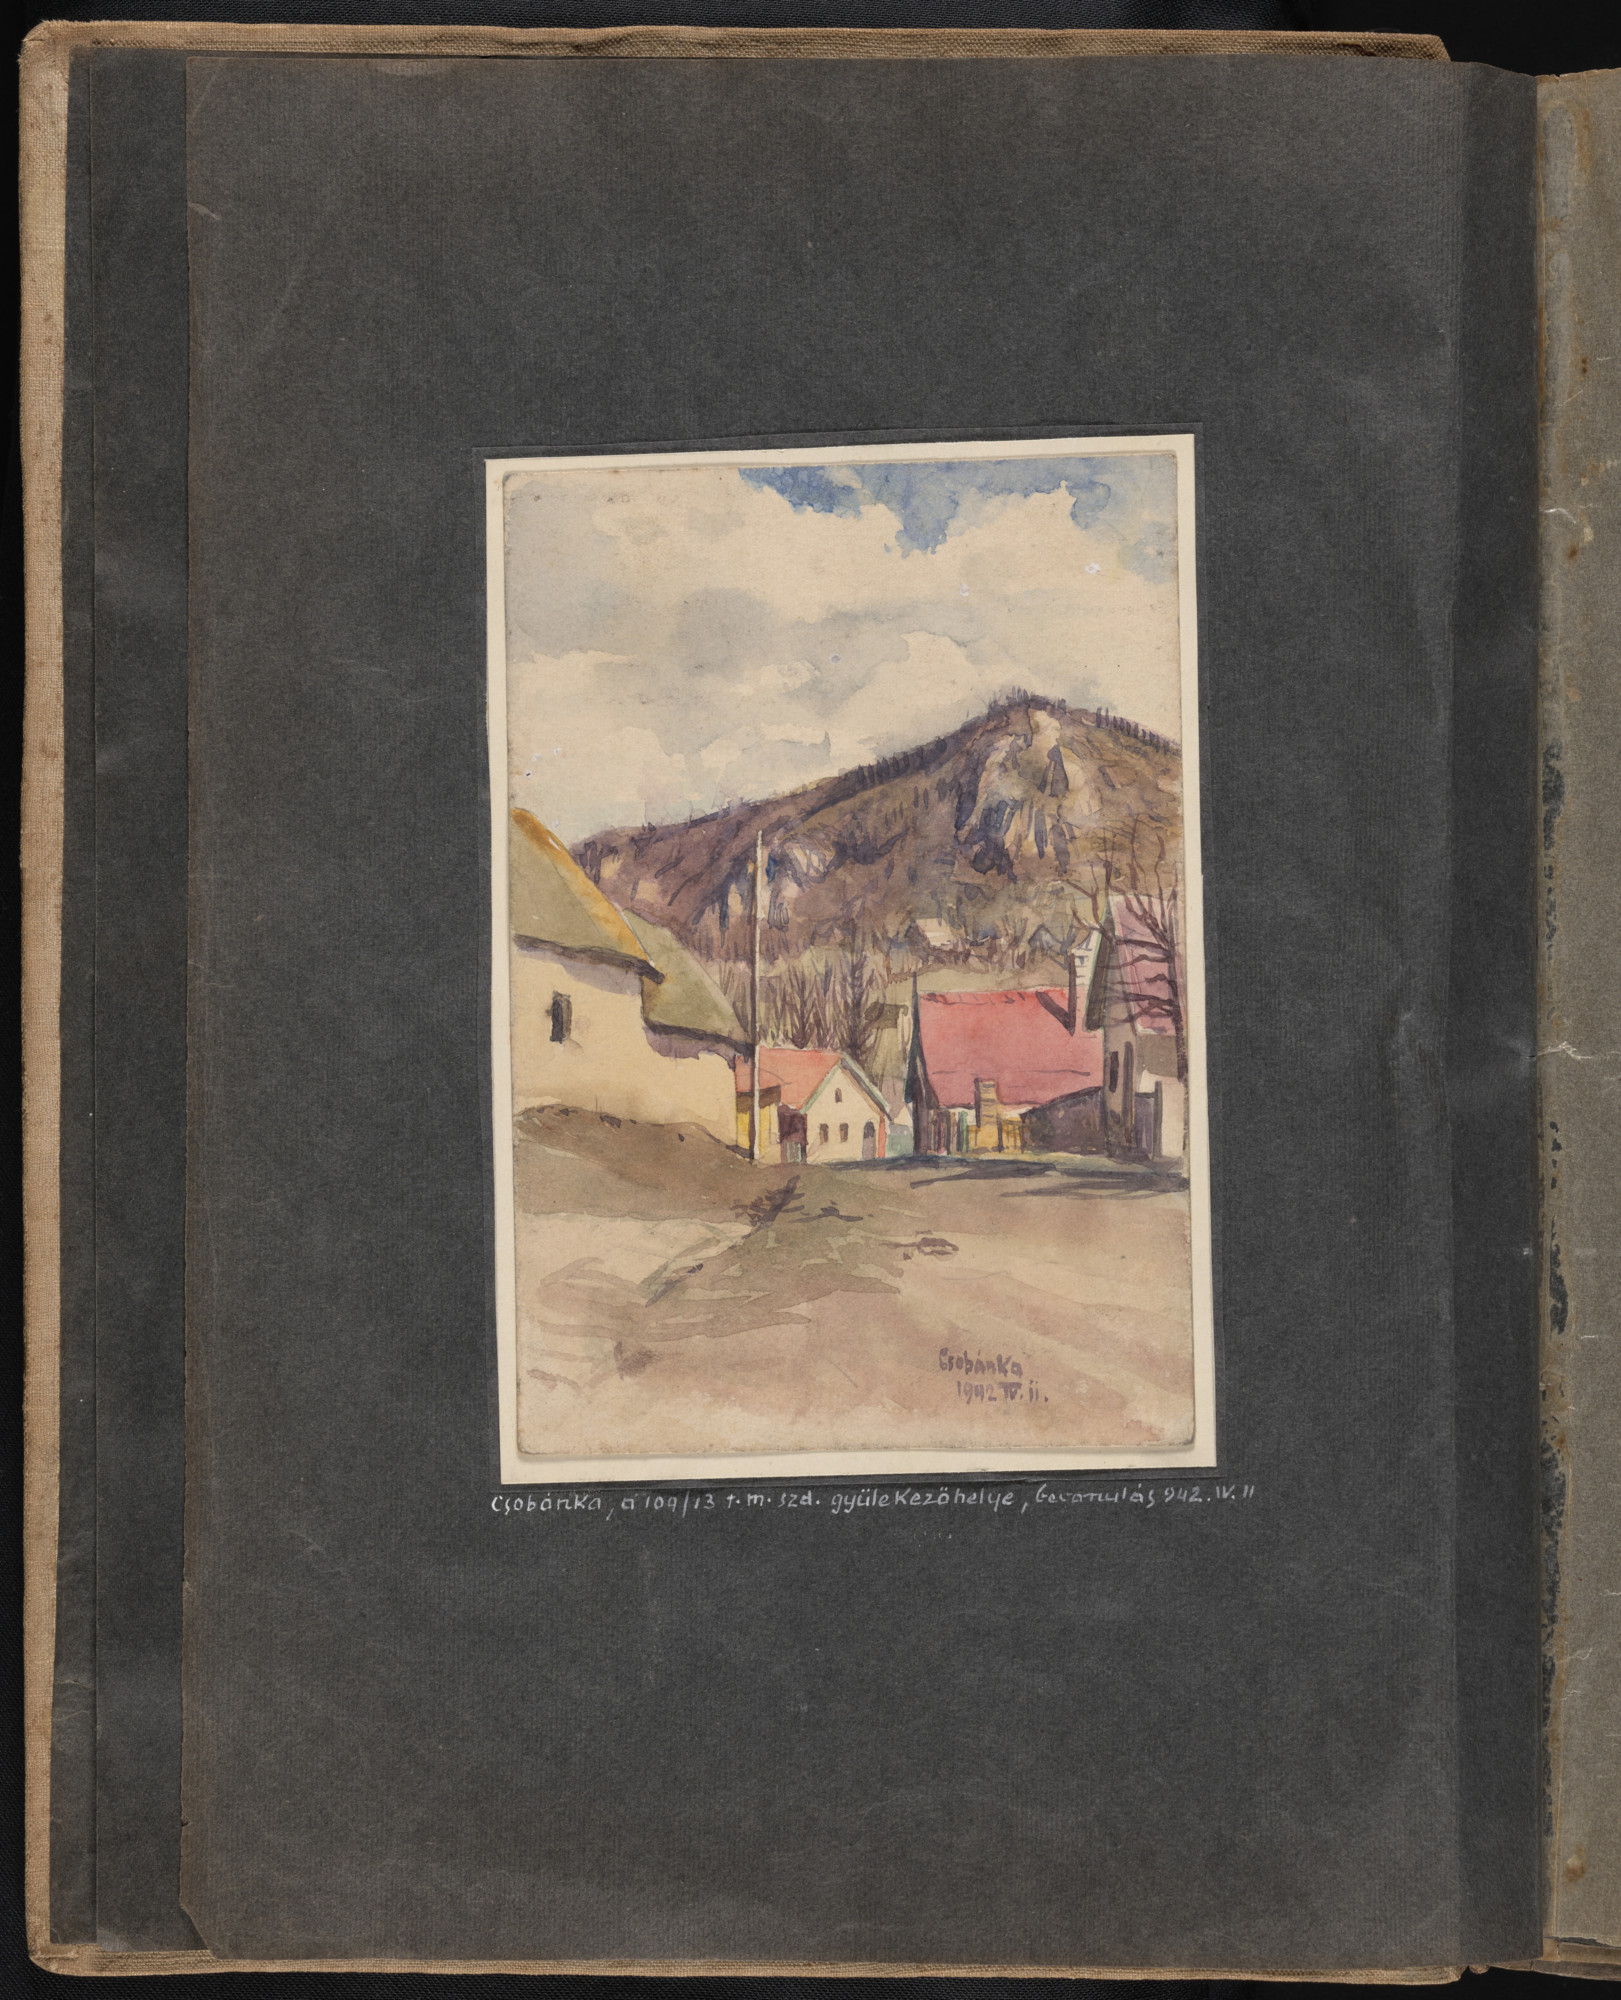 Bottom image: In a drawing dated April 14, 1942, Beifeld shows houses in Csobanka (Szentendre district), Hungary, where the Hungarian military officers assigned to the labor service company were quartered before their departure for the Ukraine.    One page of an illustrated album produced by Gyorgy Beifeld (1902-1982), a Hungarian Jew from Budapest, who was drafted into the Munkaszolgalat (Hungarian Labor Service system) and spent more than a year on the Soviet front, from April 1942 through May 1943.  The album contains 402 drawings and watercolors by Byfield, as well as a narrative of his experiences.